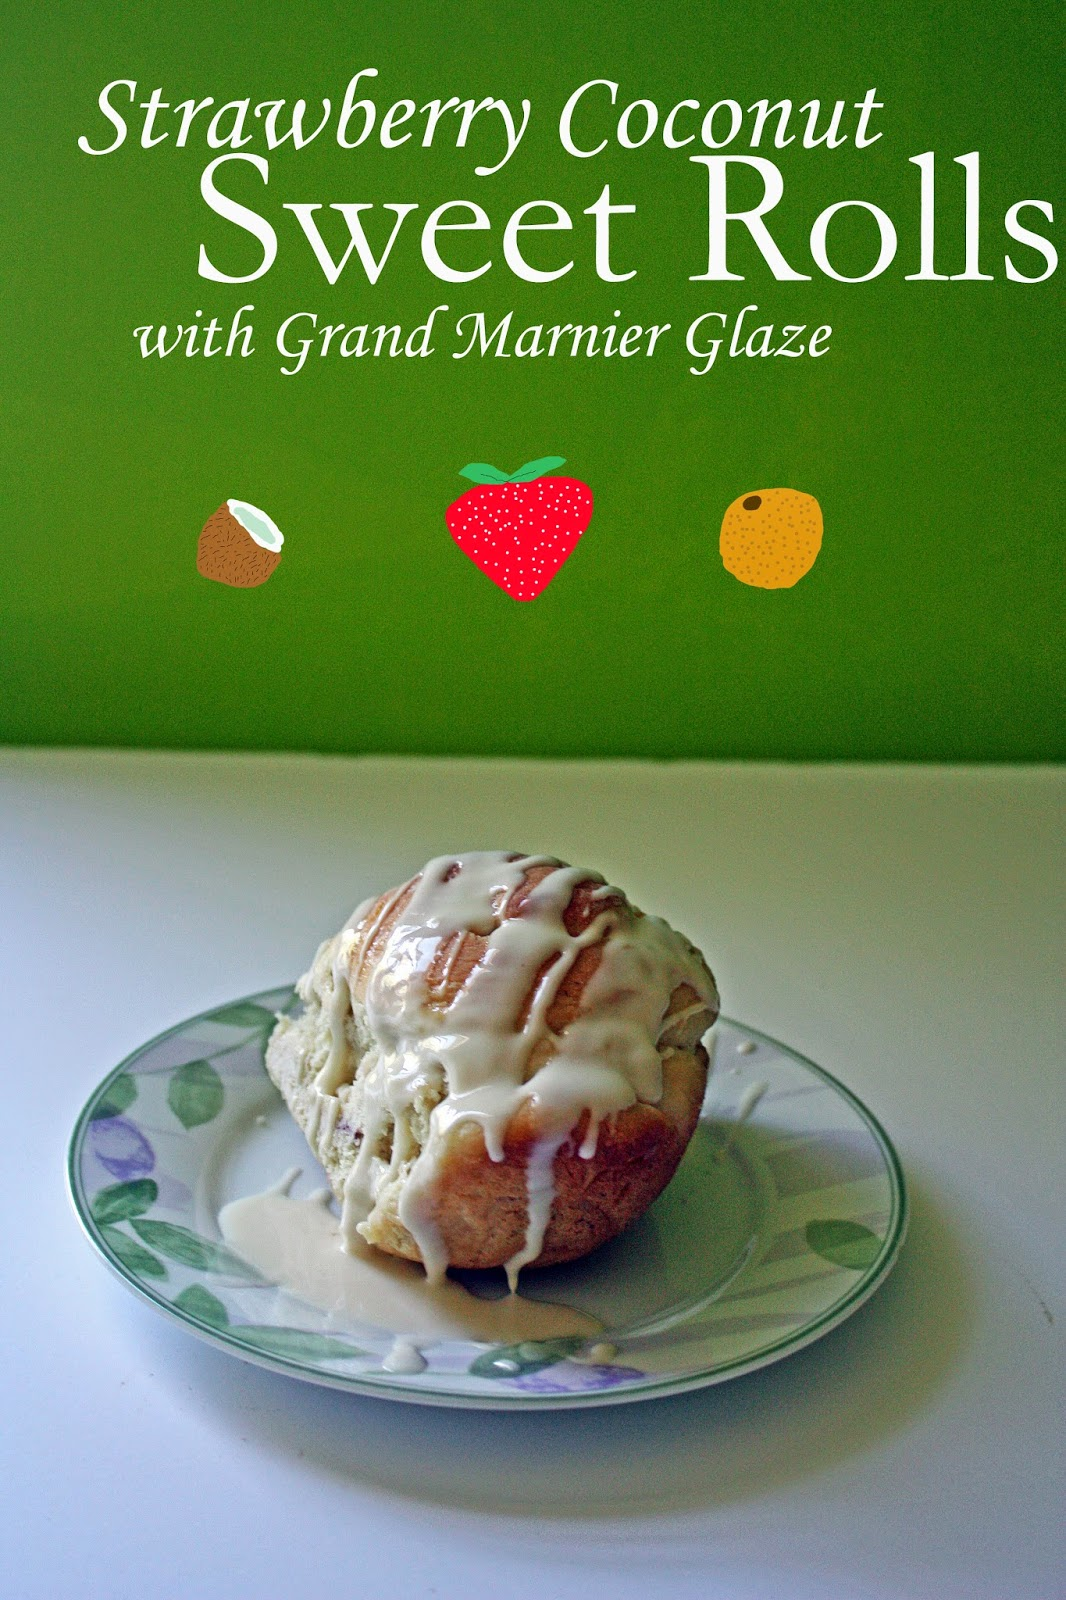 strawberry coconut sweet rolls with grand marnier glaze